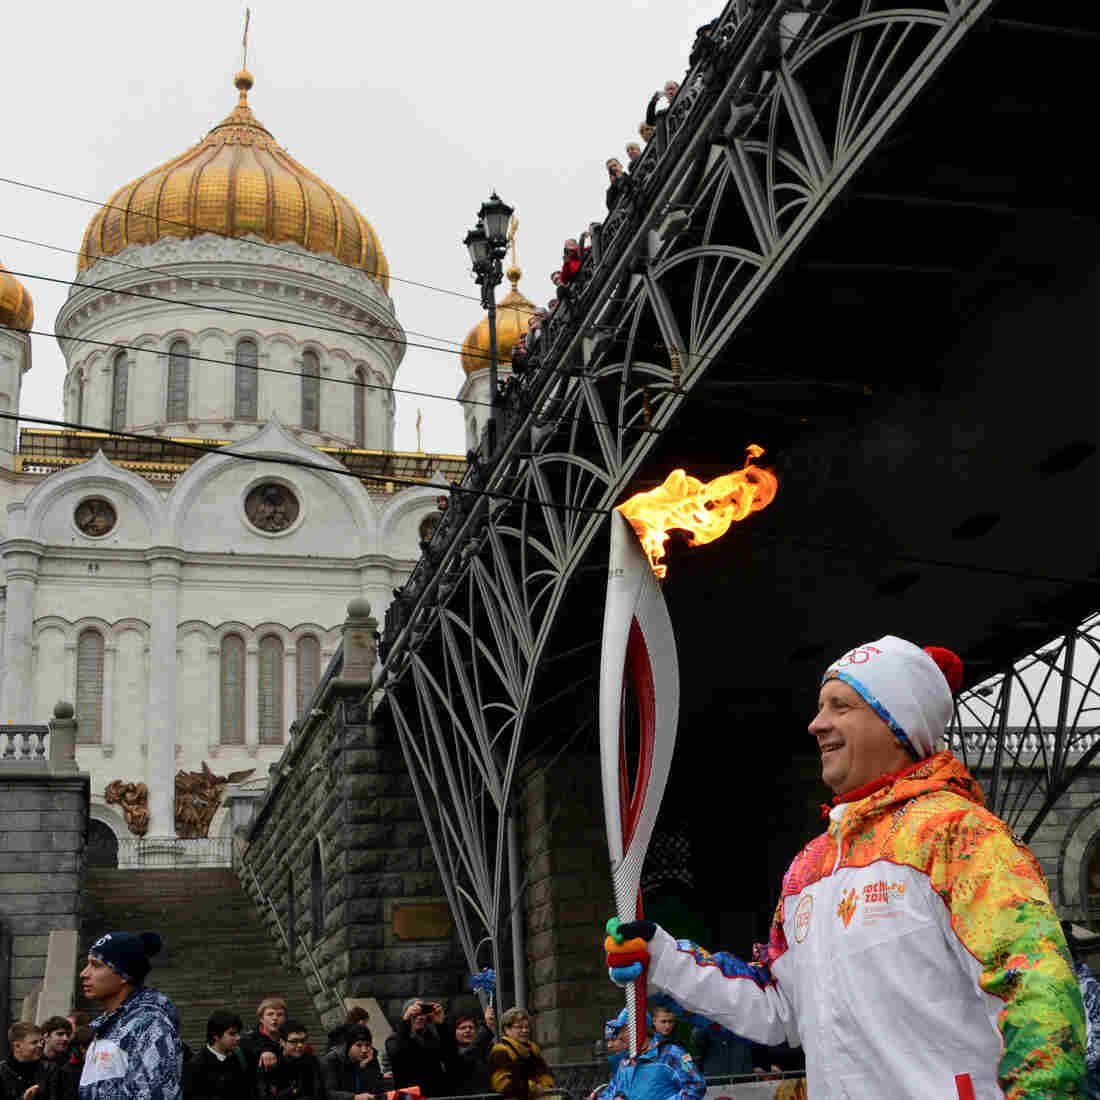 100 Days To The Sochi Olympics: Some Key Things To Know